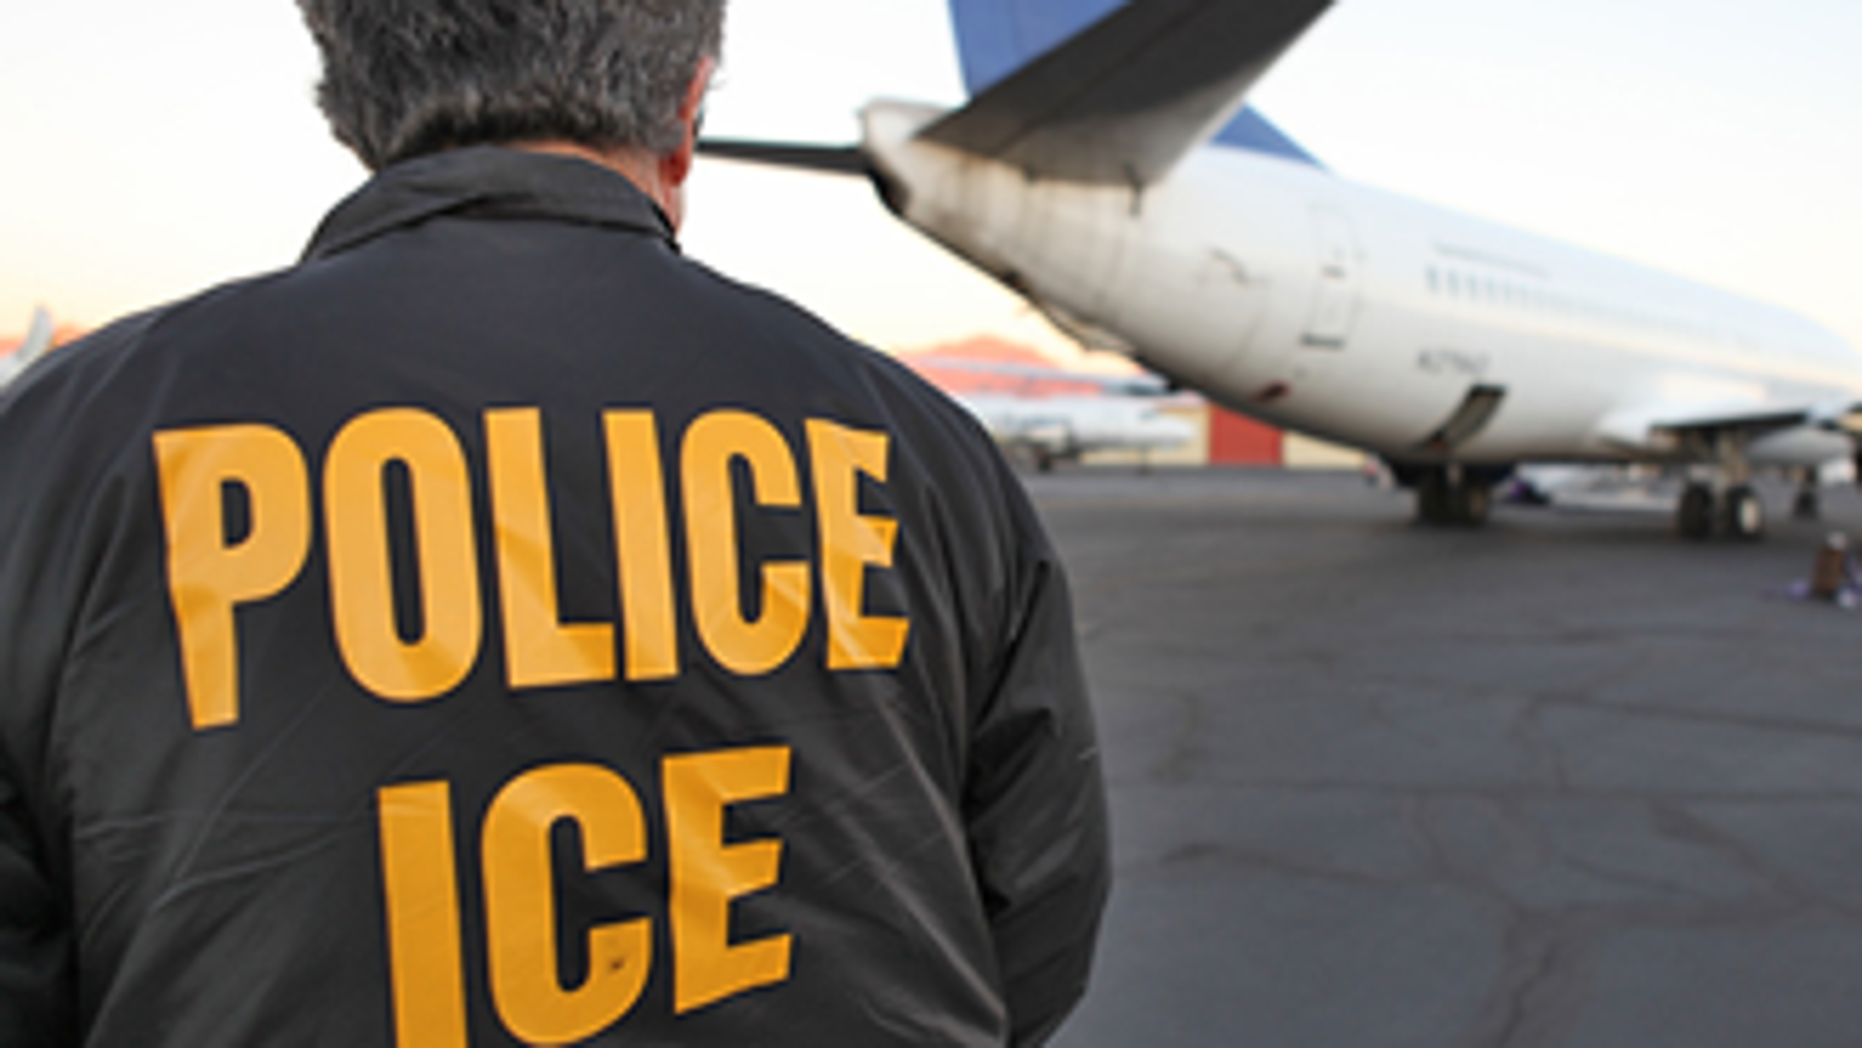 An illegal immigrant who was deported last week has been allowed reentry into the U.S., according to a report.